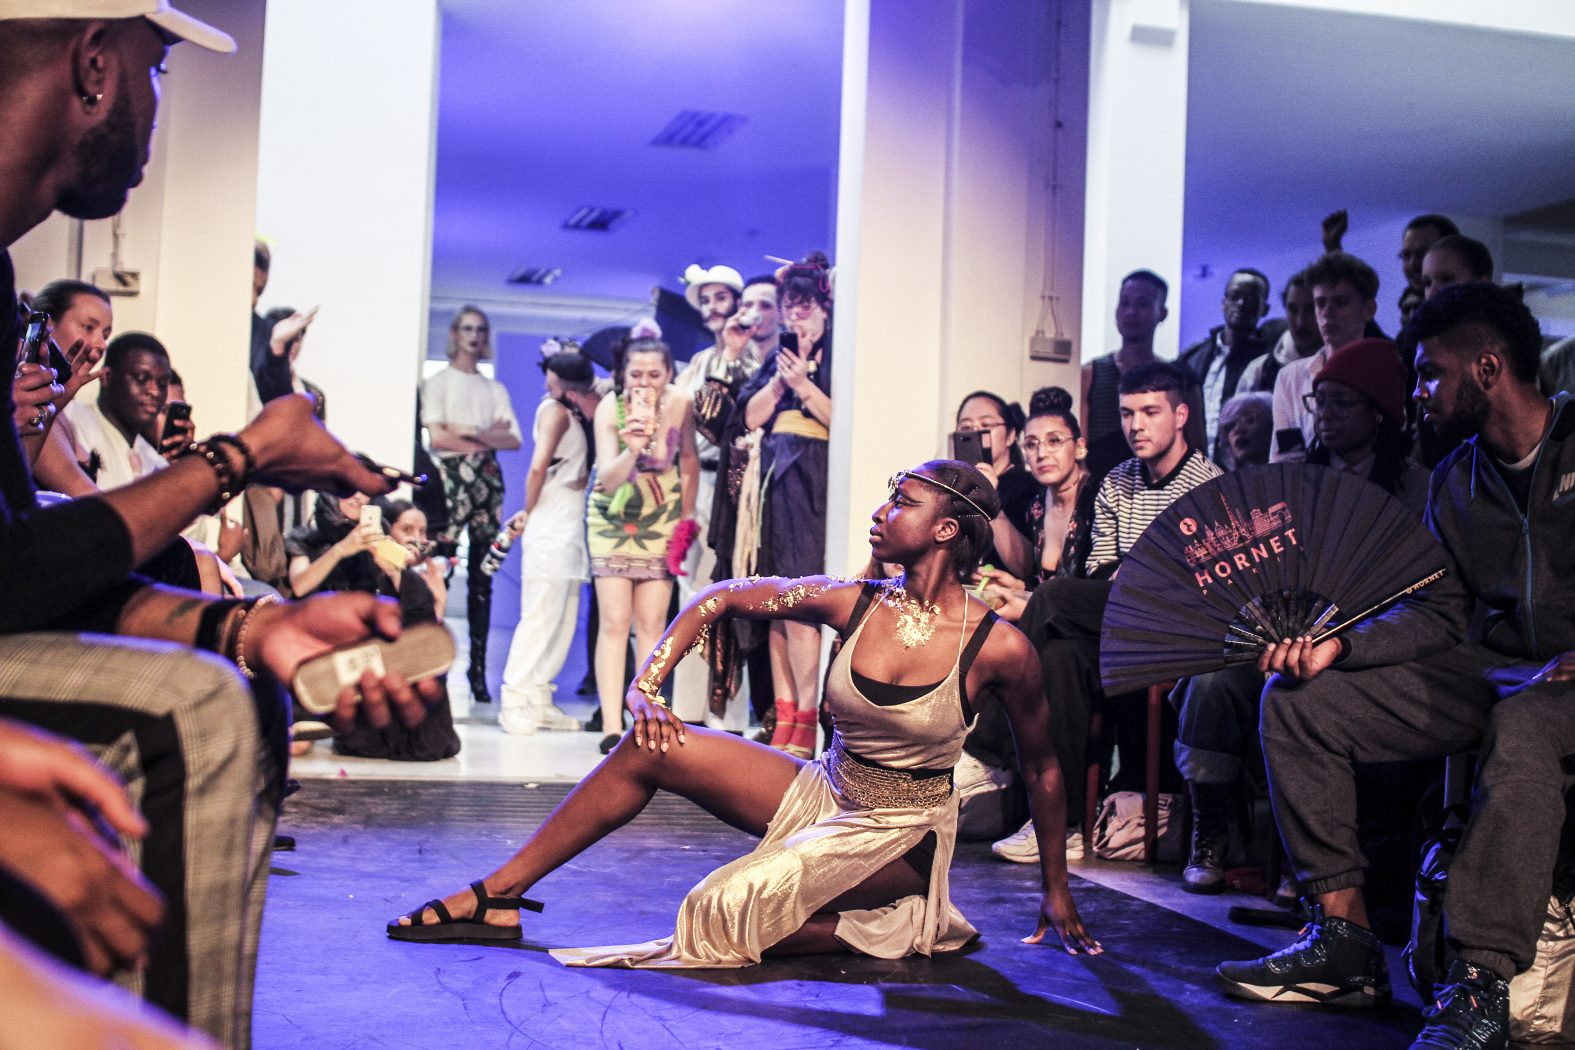 In 2018 The Grey Space hosted Utopia Ball x Fashion Show by Yamuna Forzani